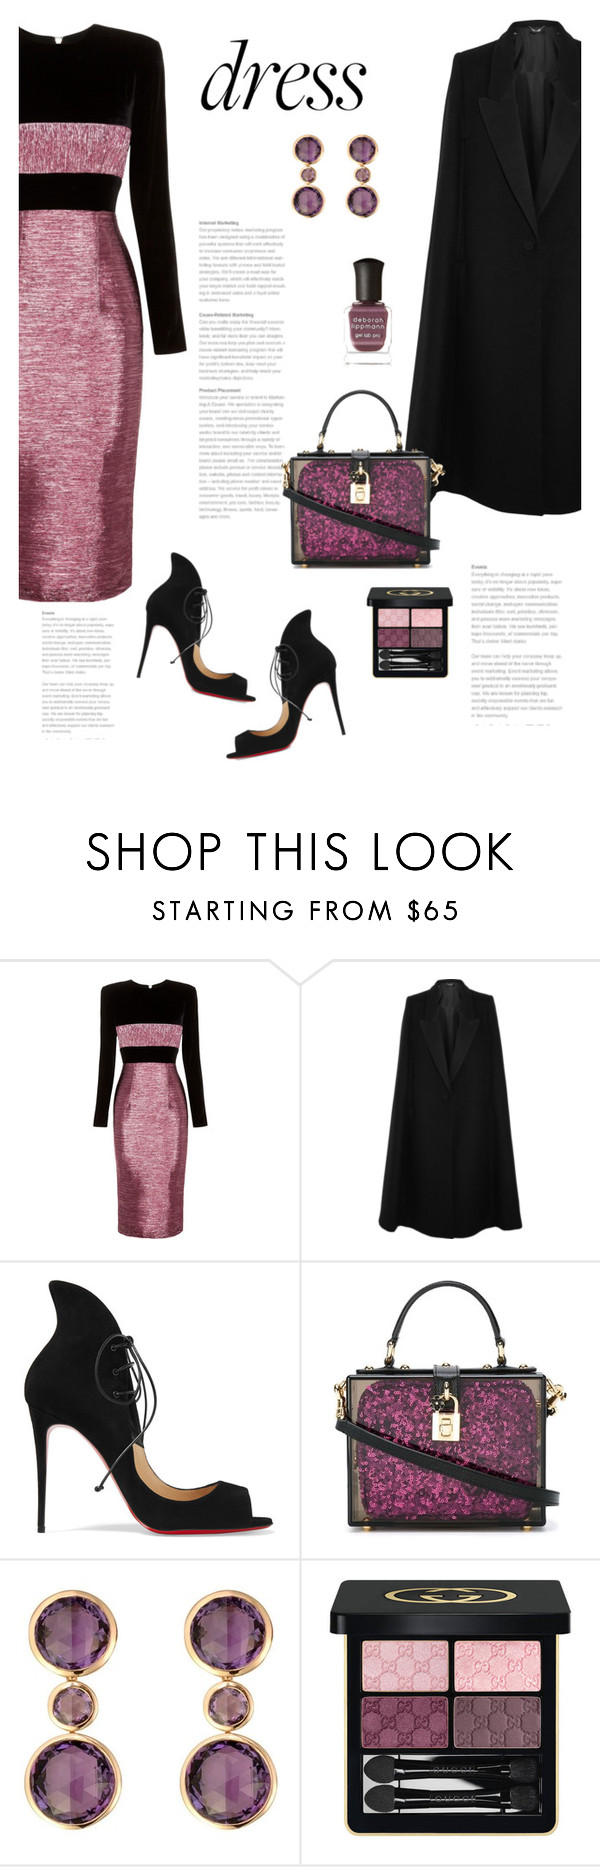 """On Trend: Two-Tone Dresses"" by bliznec ❤ liked on Polyvore featuring Alex Perry, STELLA McCARTNEY, Christian Louboutin, Dolce&Gabbana, RenéSim, Gucci, Deborah Lippmann, polyvoreeditorial, polyvorecontest and TwotoneDresses"